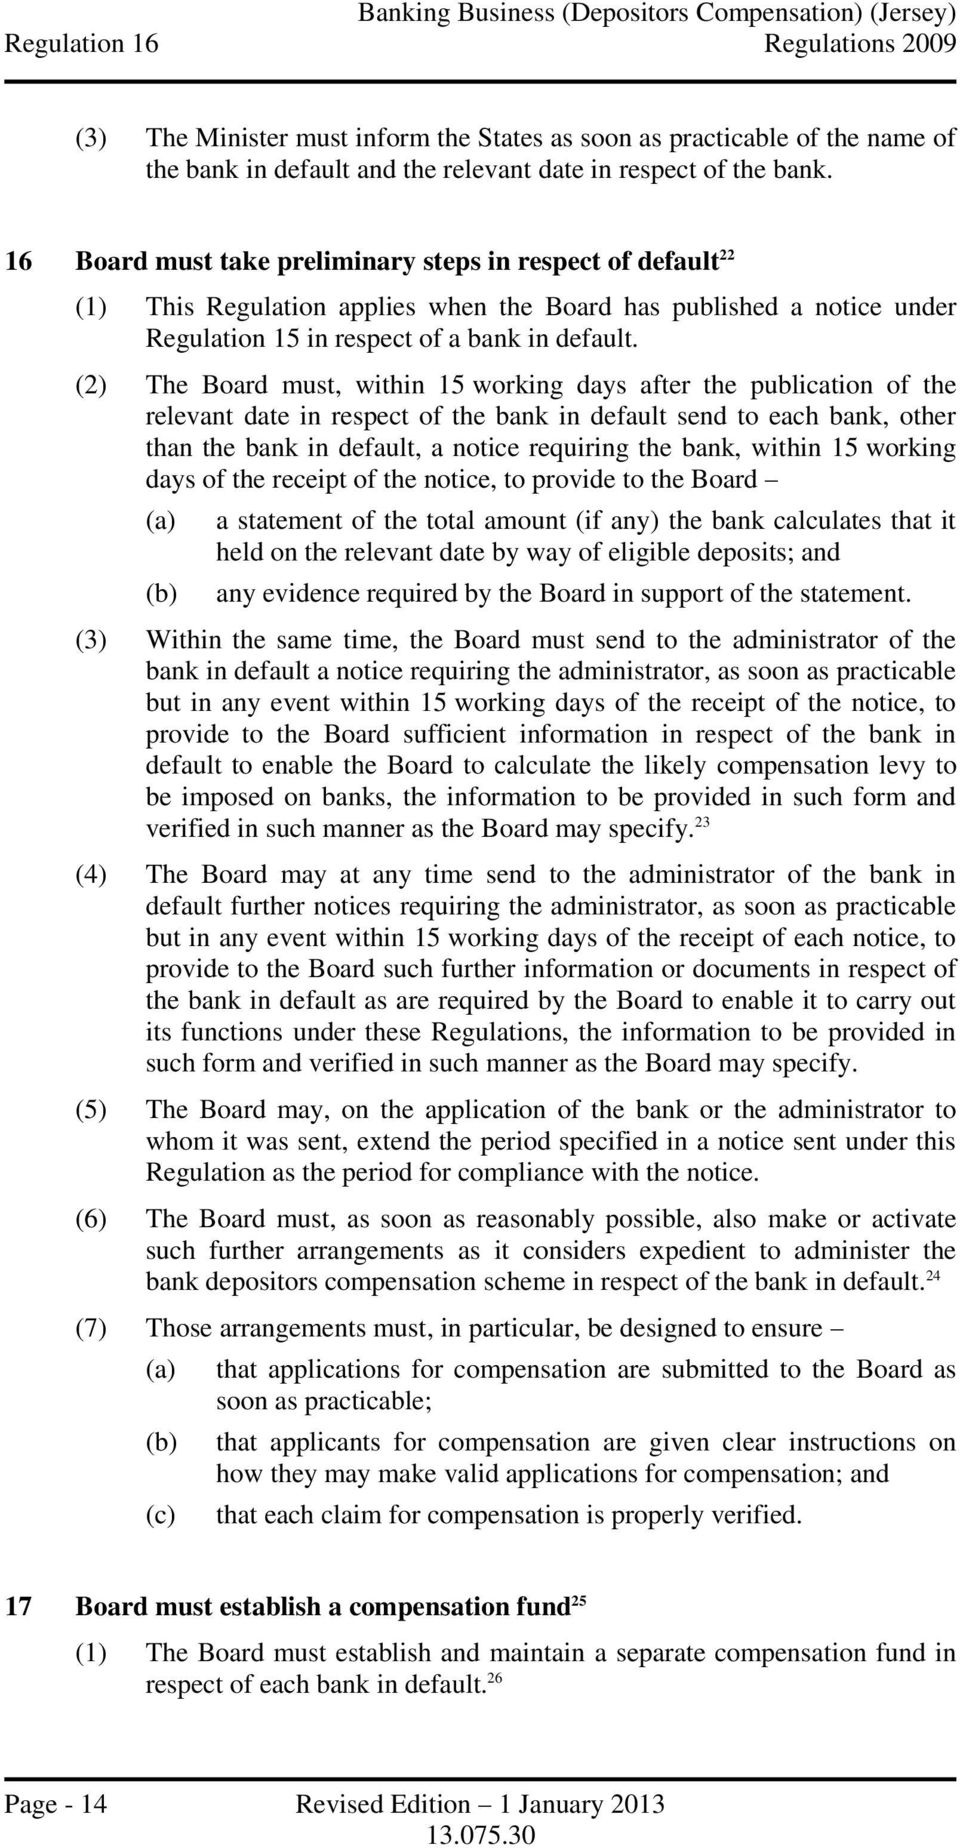 (2) The Board must, within 15 working days after the publication of the relevant date in respect of the bank in default send to each bank, other than the bank in default, a notice requiring the bank,